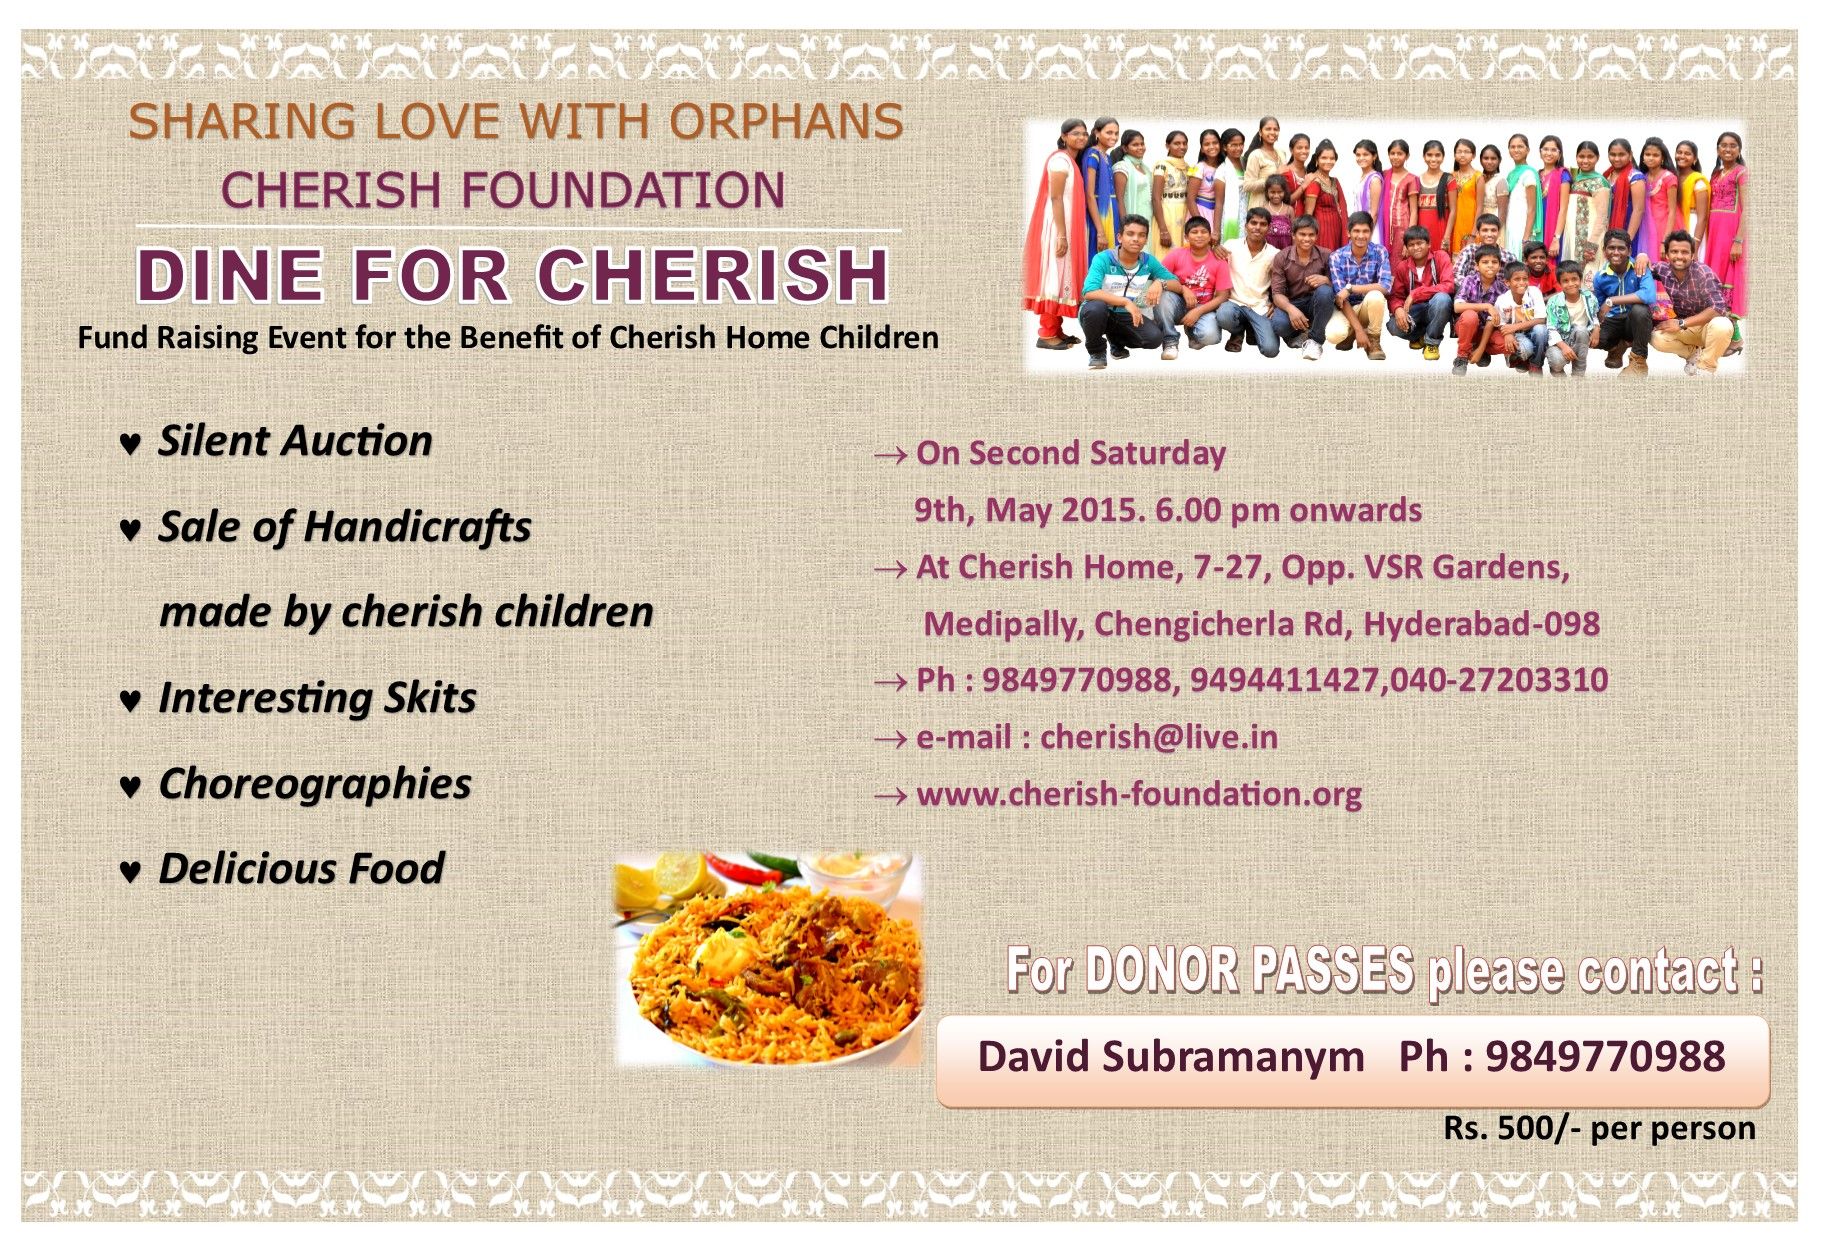 DINE FOR CHERISH (fund raising event for the benefit of cherish foundation orphanage children)